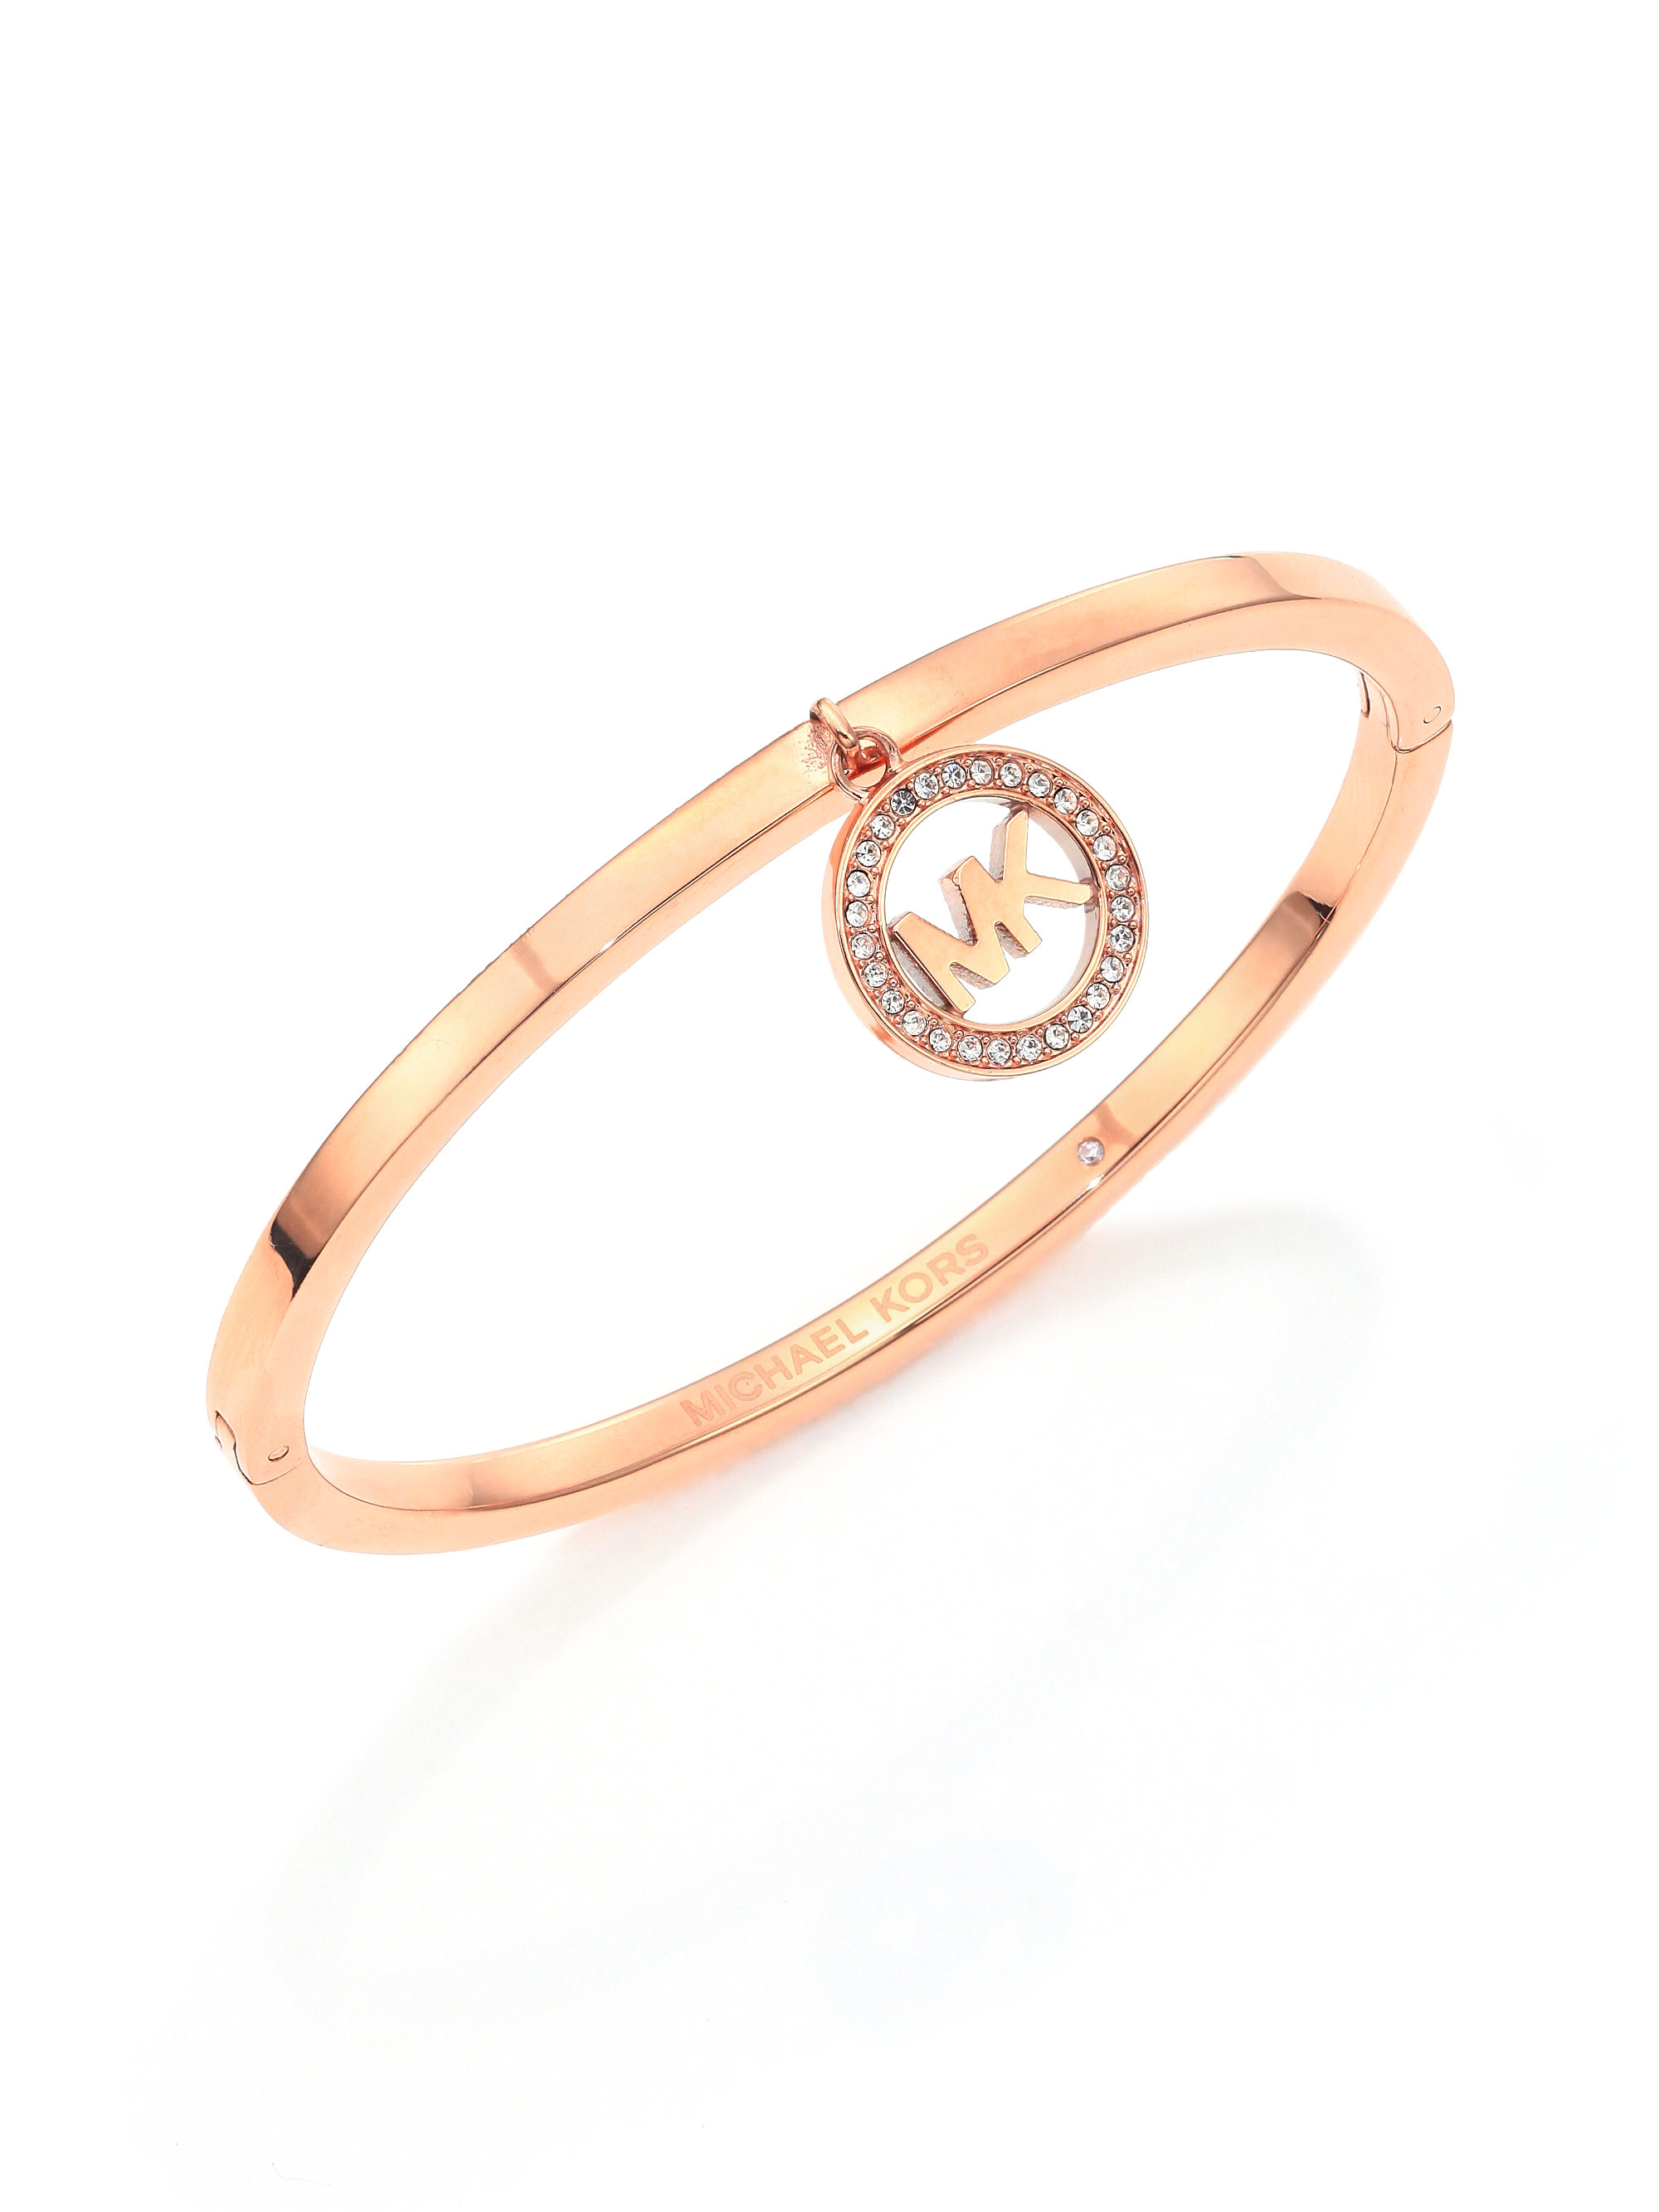 schmuck website bangle braceletrose charm kors gold neu bangles rose logo goldtone michael heart pink heritage bracelet